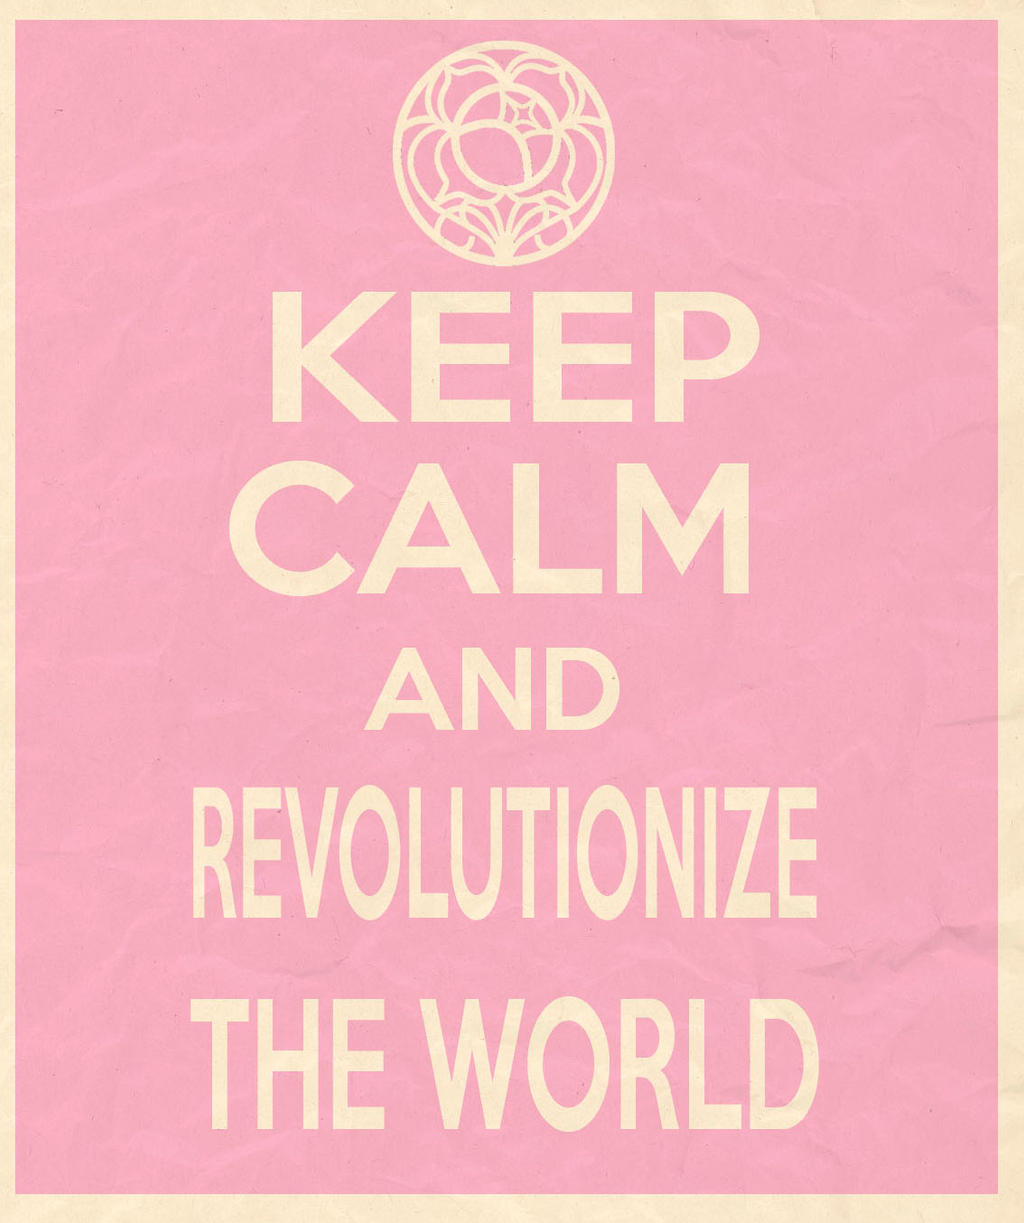 Keep calm and revolutionize the world by MizakiShidou